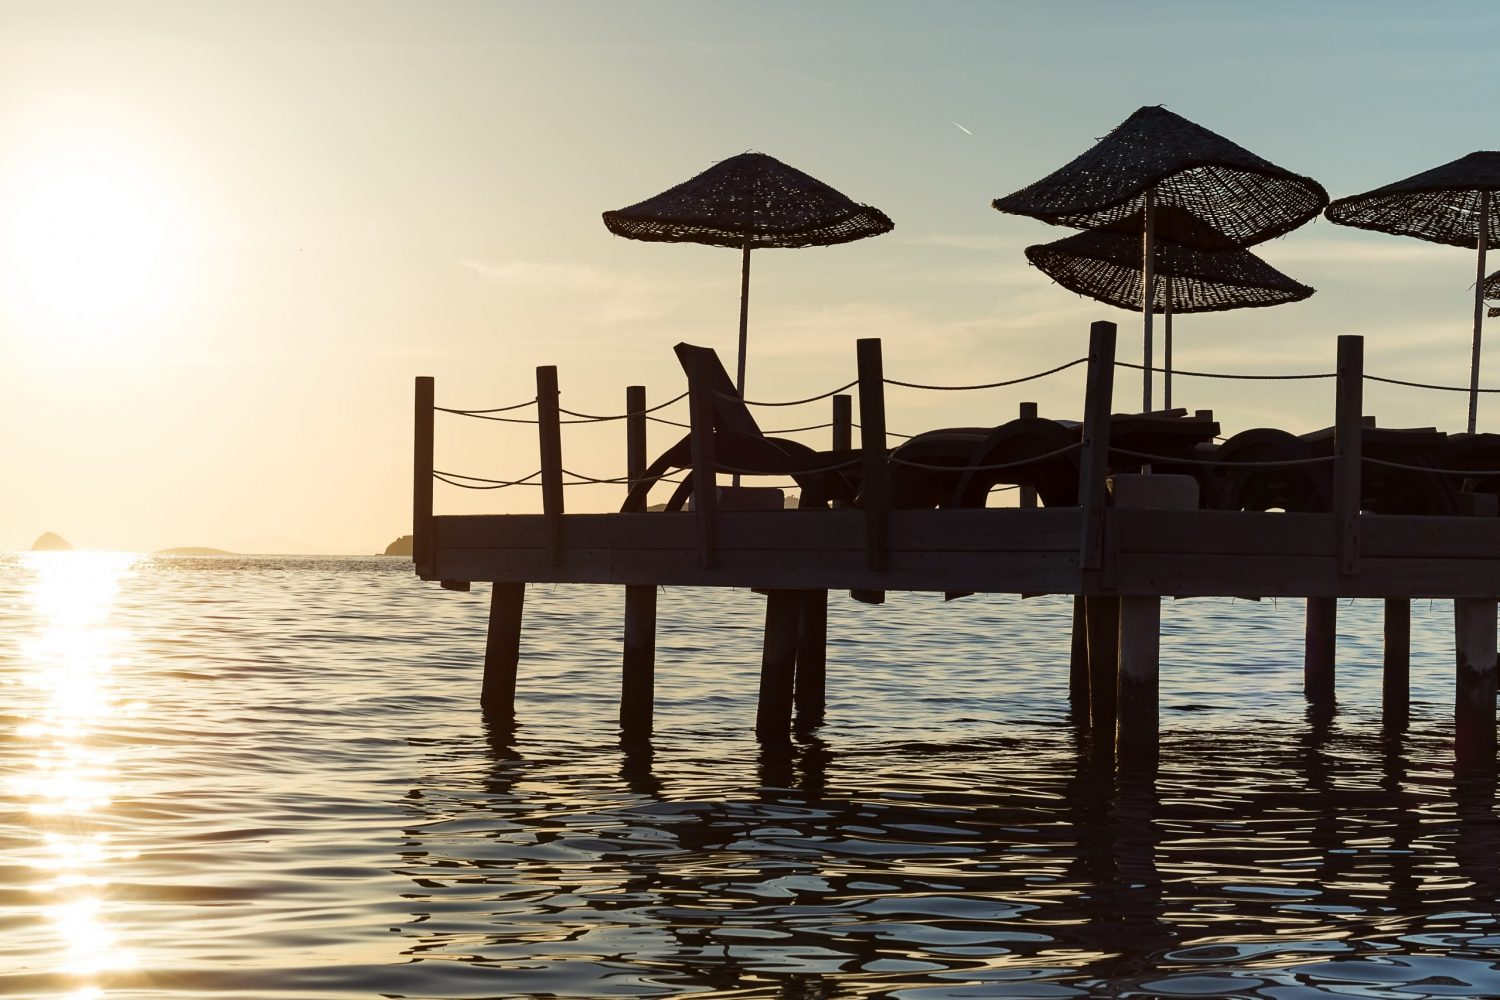 Dawn of the sun rising from the horizon of the sea. Pontoon moored on the seashore with sunbeds and umbrellas